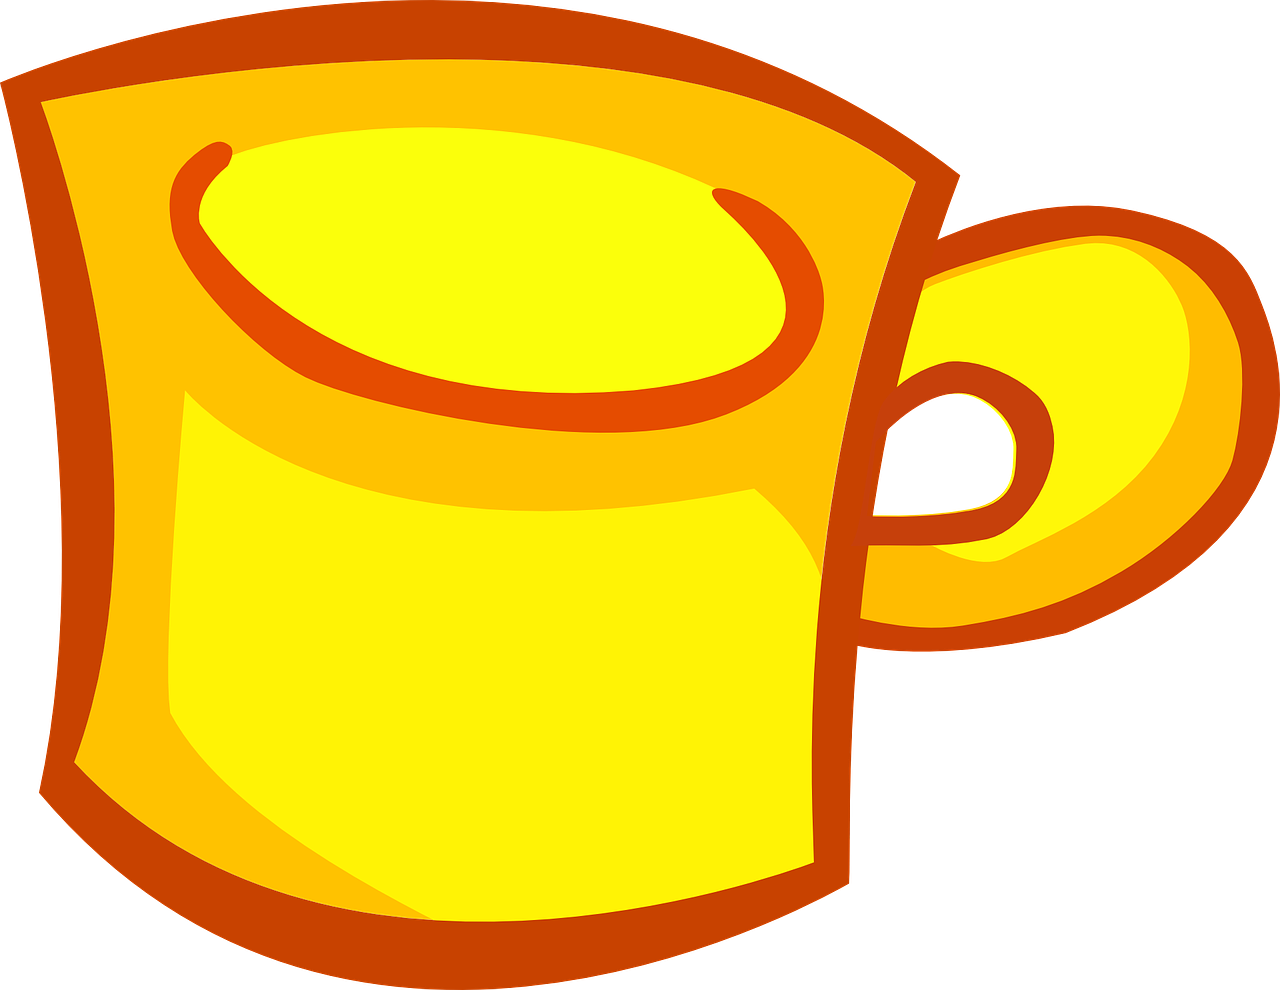 cup,mug,drink,coffee,cafe,beverage,hot,espresso,breakfast,morning,aroma,caffeine,tea,break,cappuccino,latte,mocha,chocolate,refreshment,ceramic,free vector graphics,free pictures, free photos, free images, royalty free, free illustrations, public domain